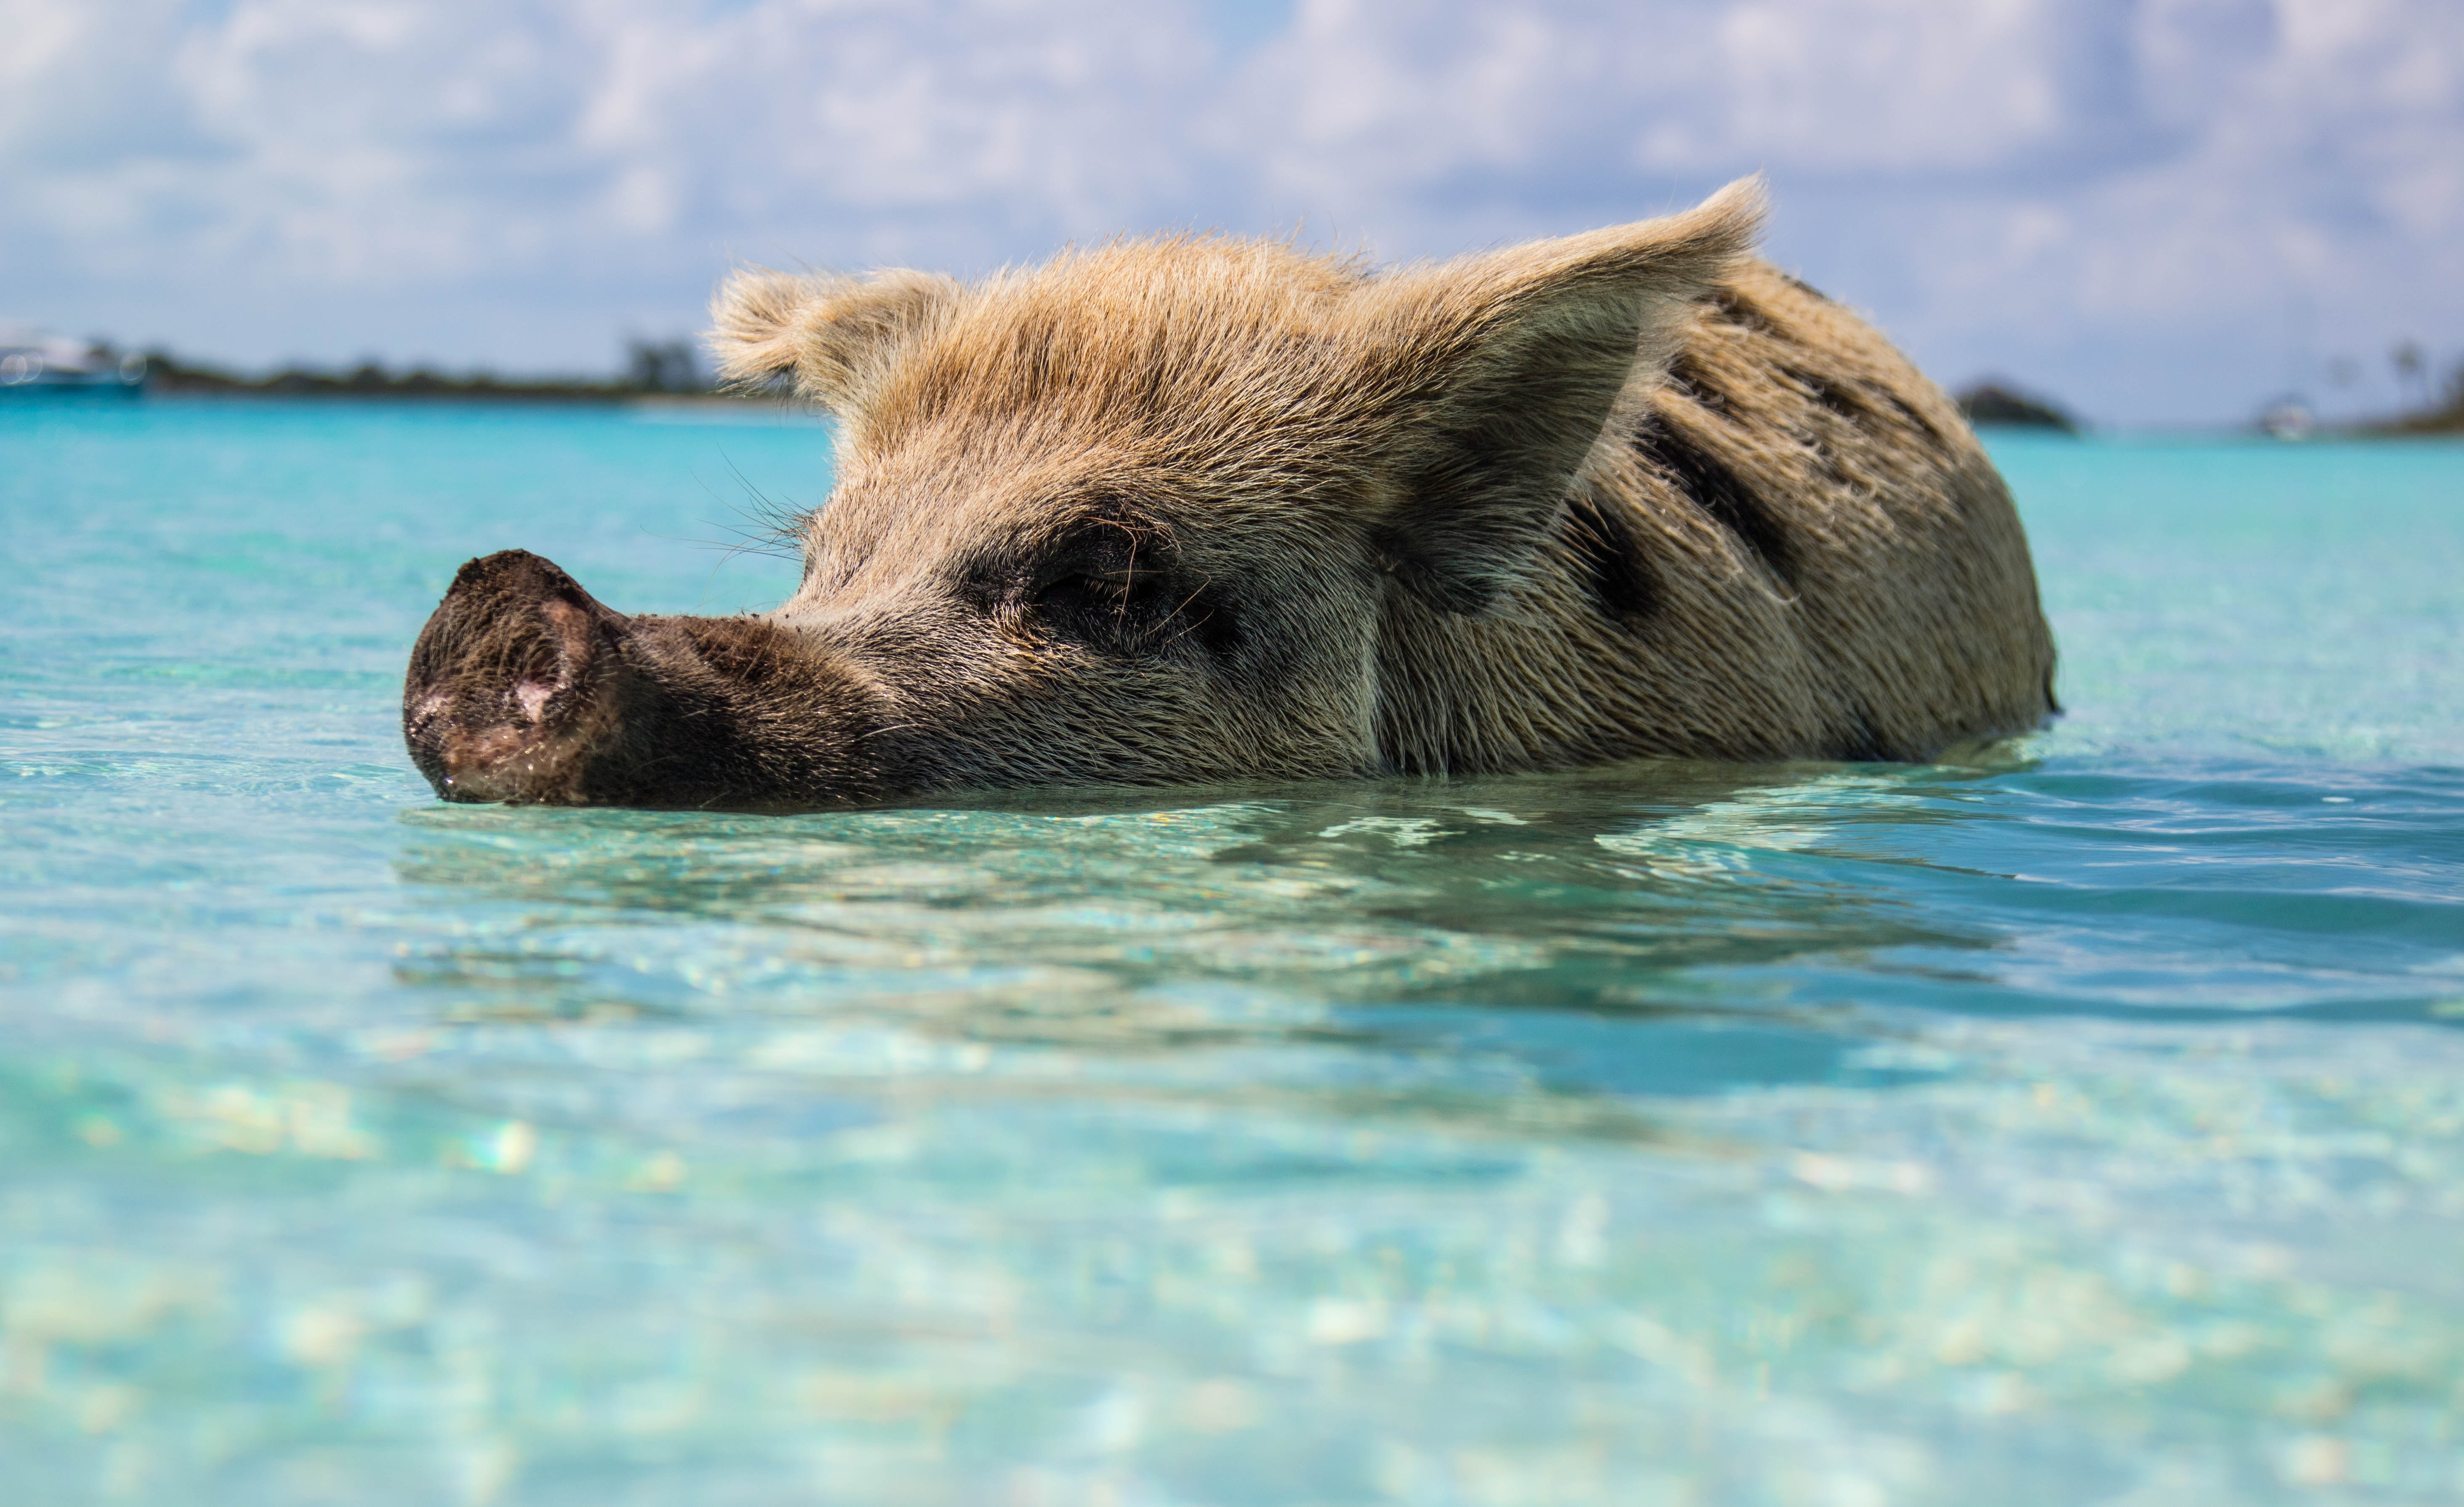 brown pig in body of water